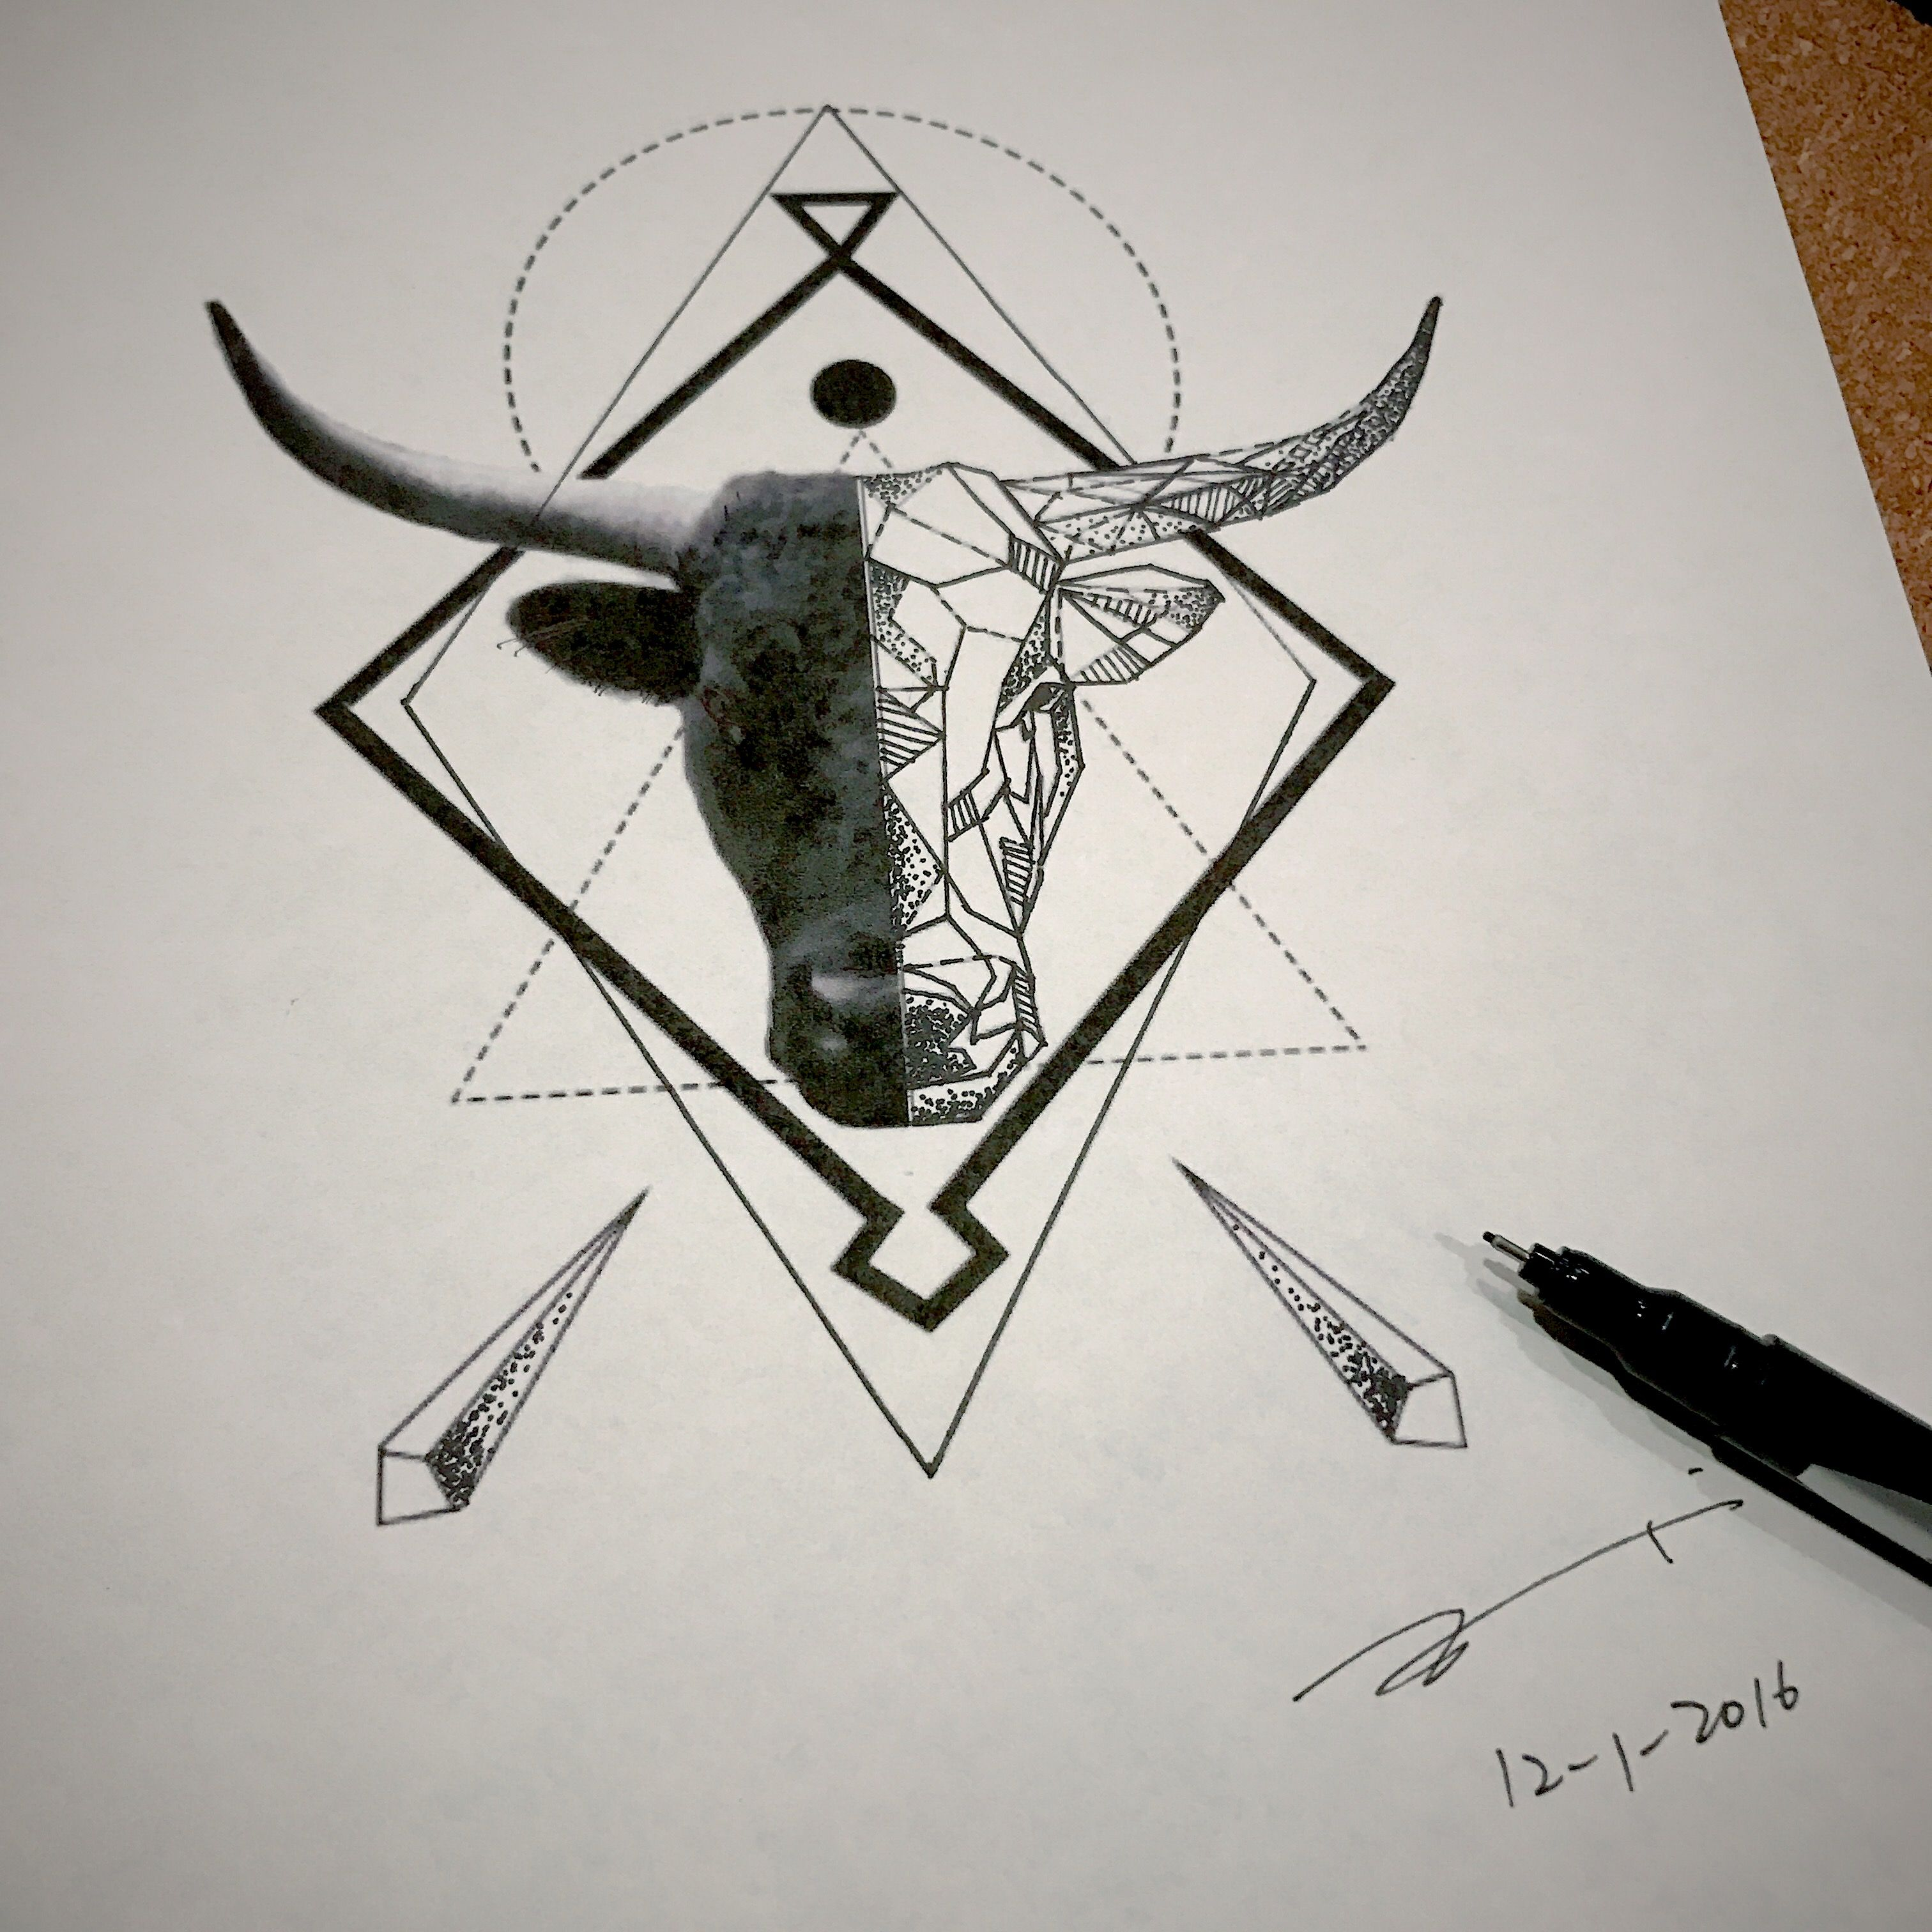 Taurus star sign tattoo designs - Geometric Bull Head Tattoo Design By Esther C Because There Aren T A Lot